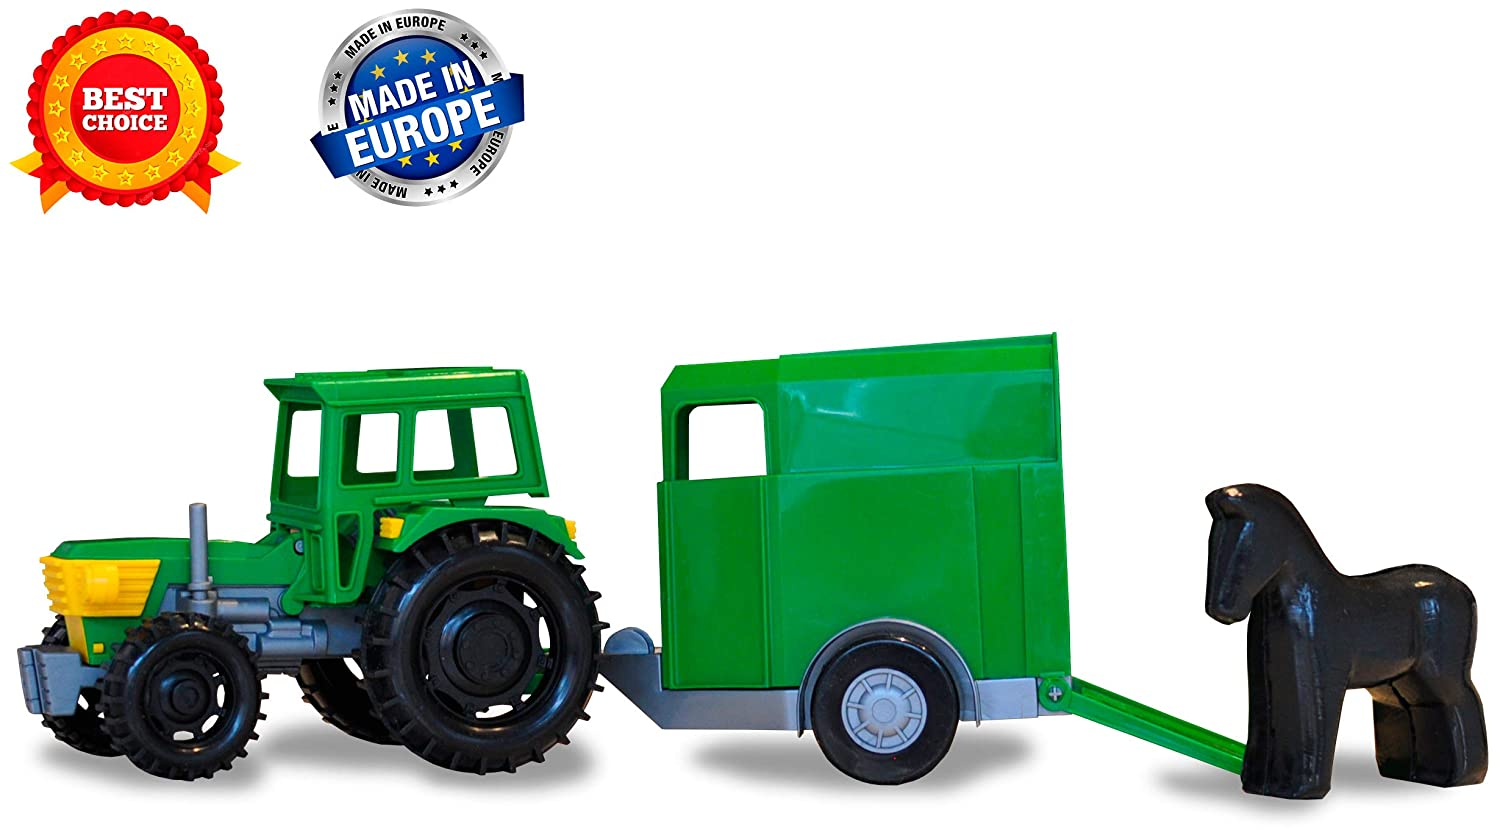 bc87aab93 Toy trucks - Kids toys – Construction toys - Farm toys tractor trailer for  boys toddlers – Tractor toys - toys vehicles - Tractor car farm toy for ...